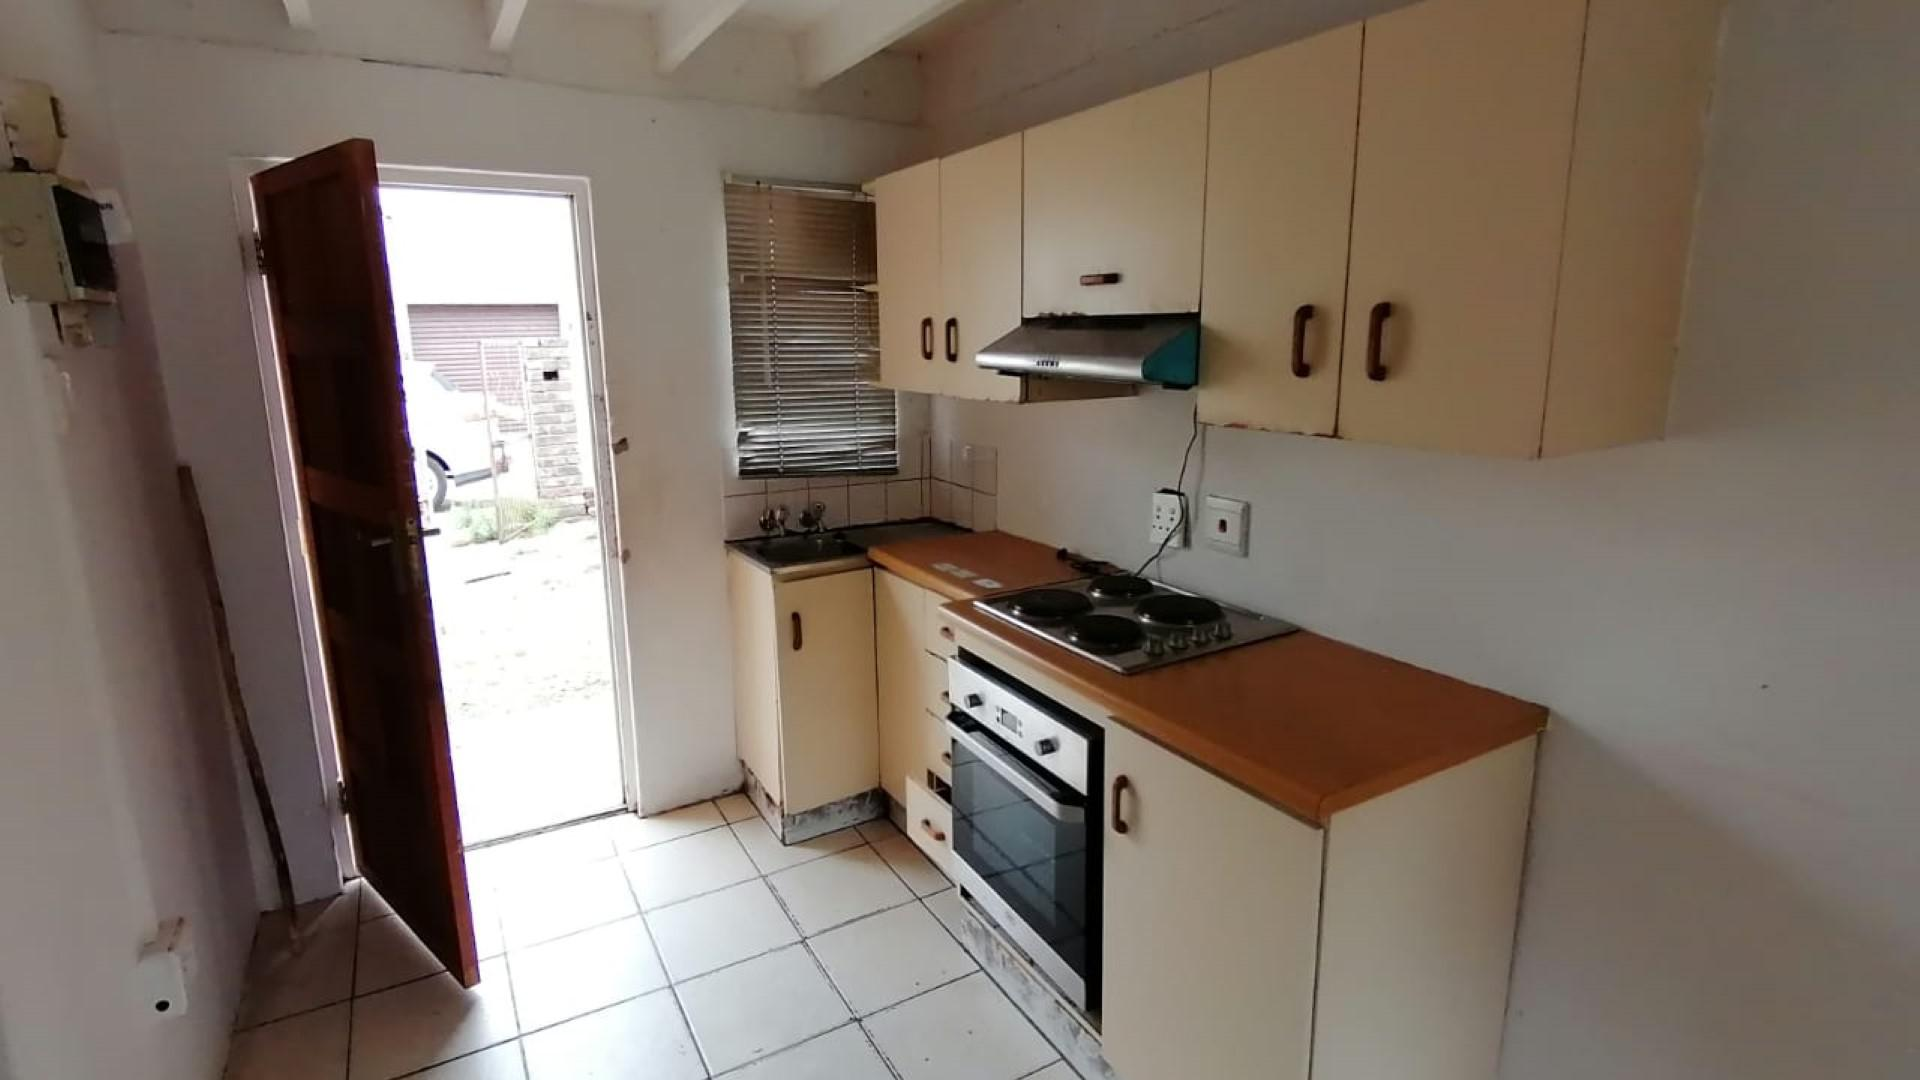 Kitchen of property in Algoa Park